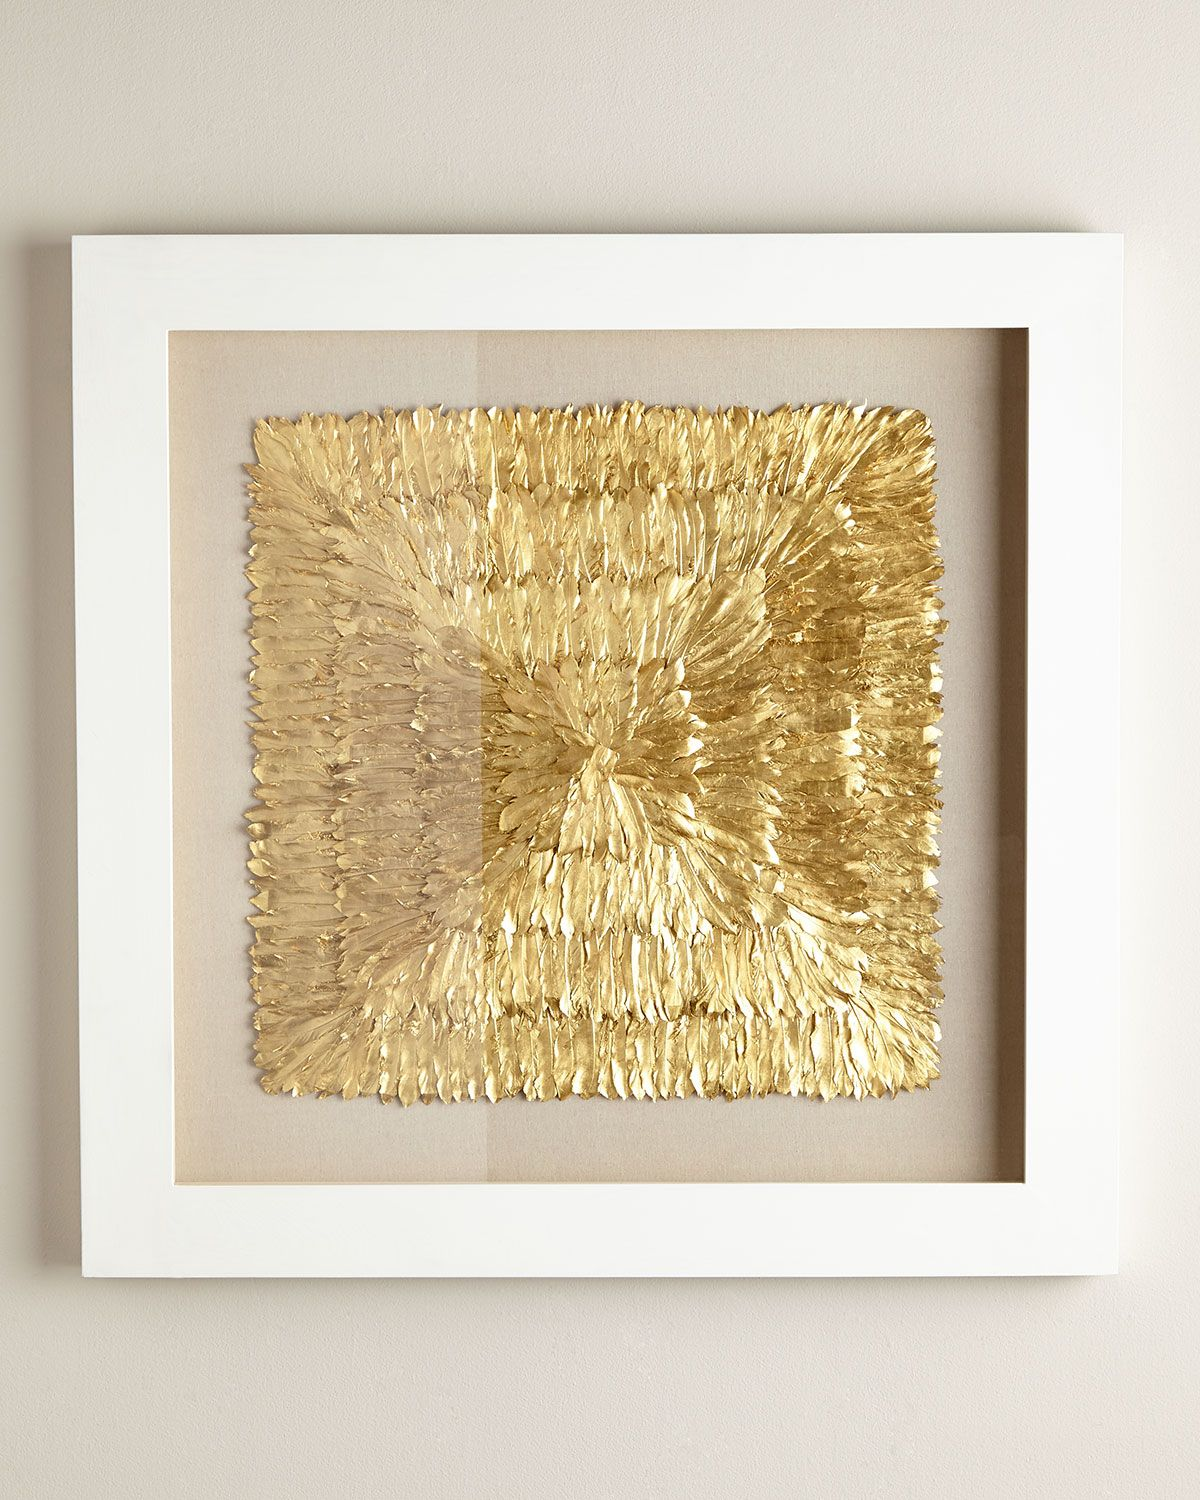 Golden Feather Spaturral Wall Decor, Gold